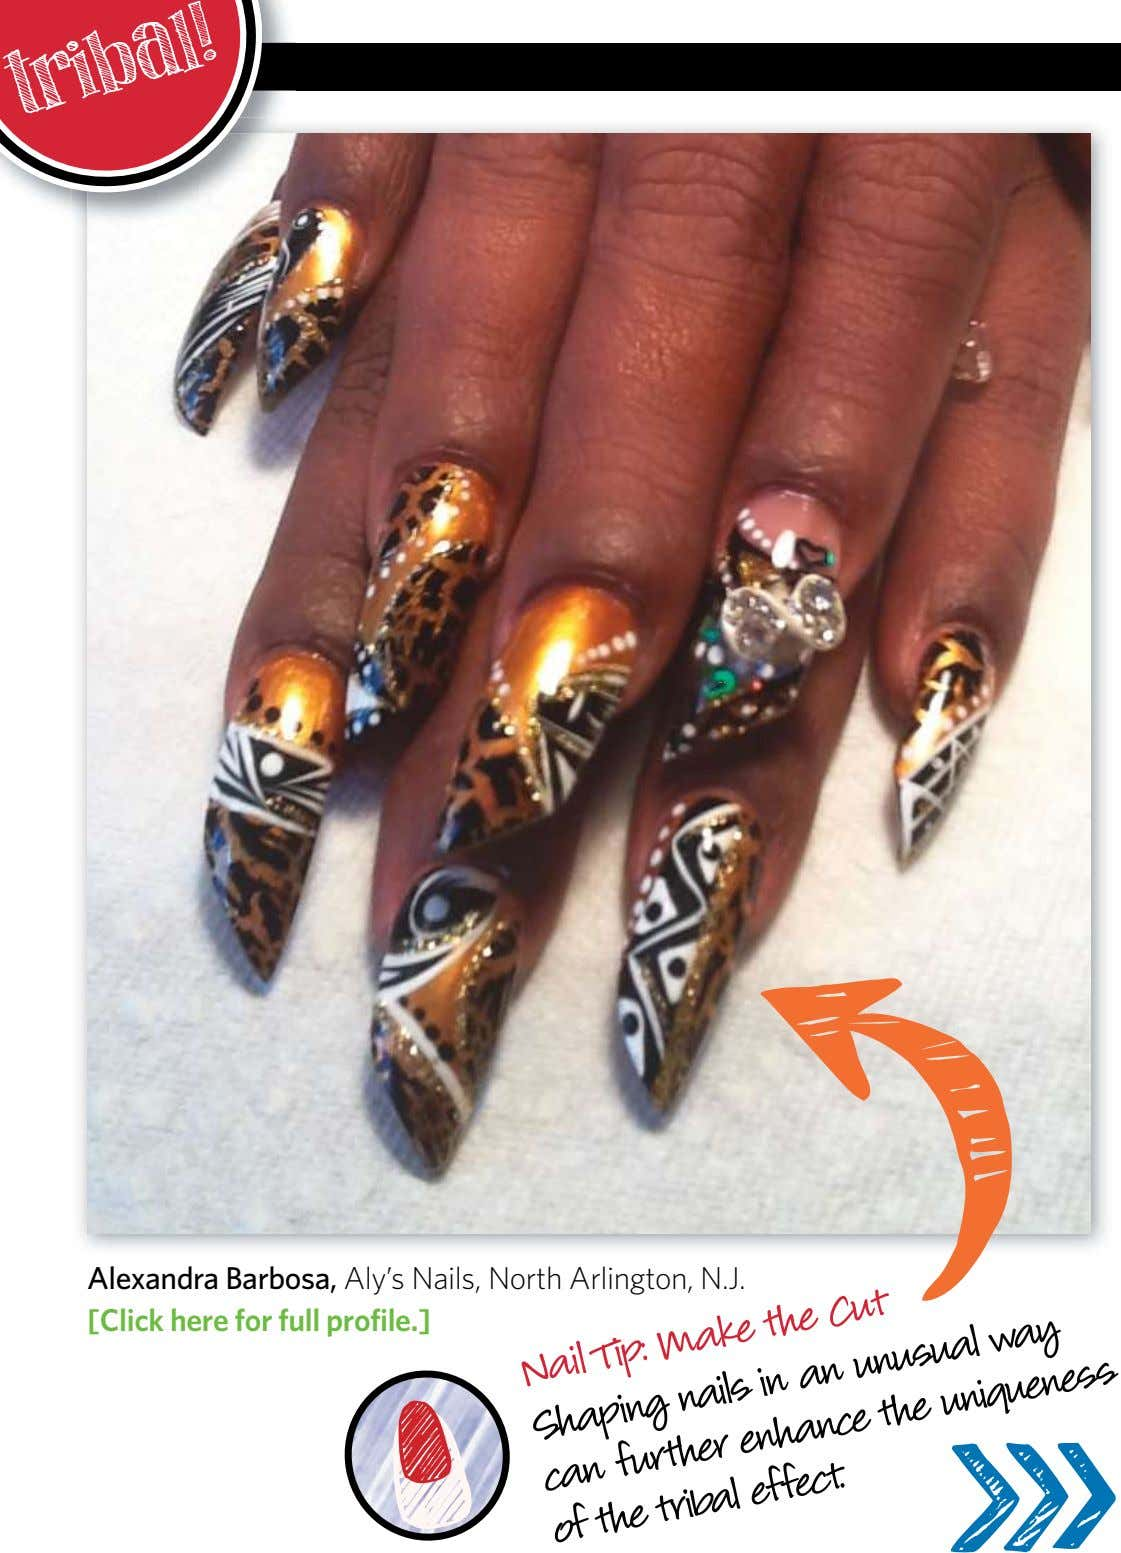 tribal! Alexandra Barbosa, Aly's Nails, North Arlington, N.J. [Click here for full profile.] Nail Tip: